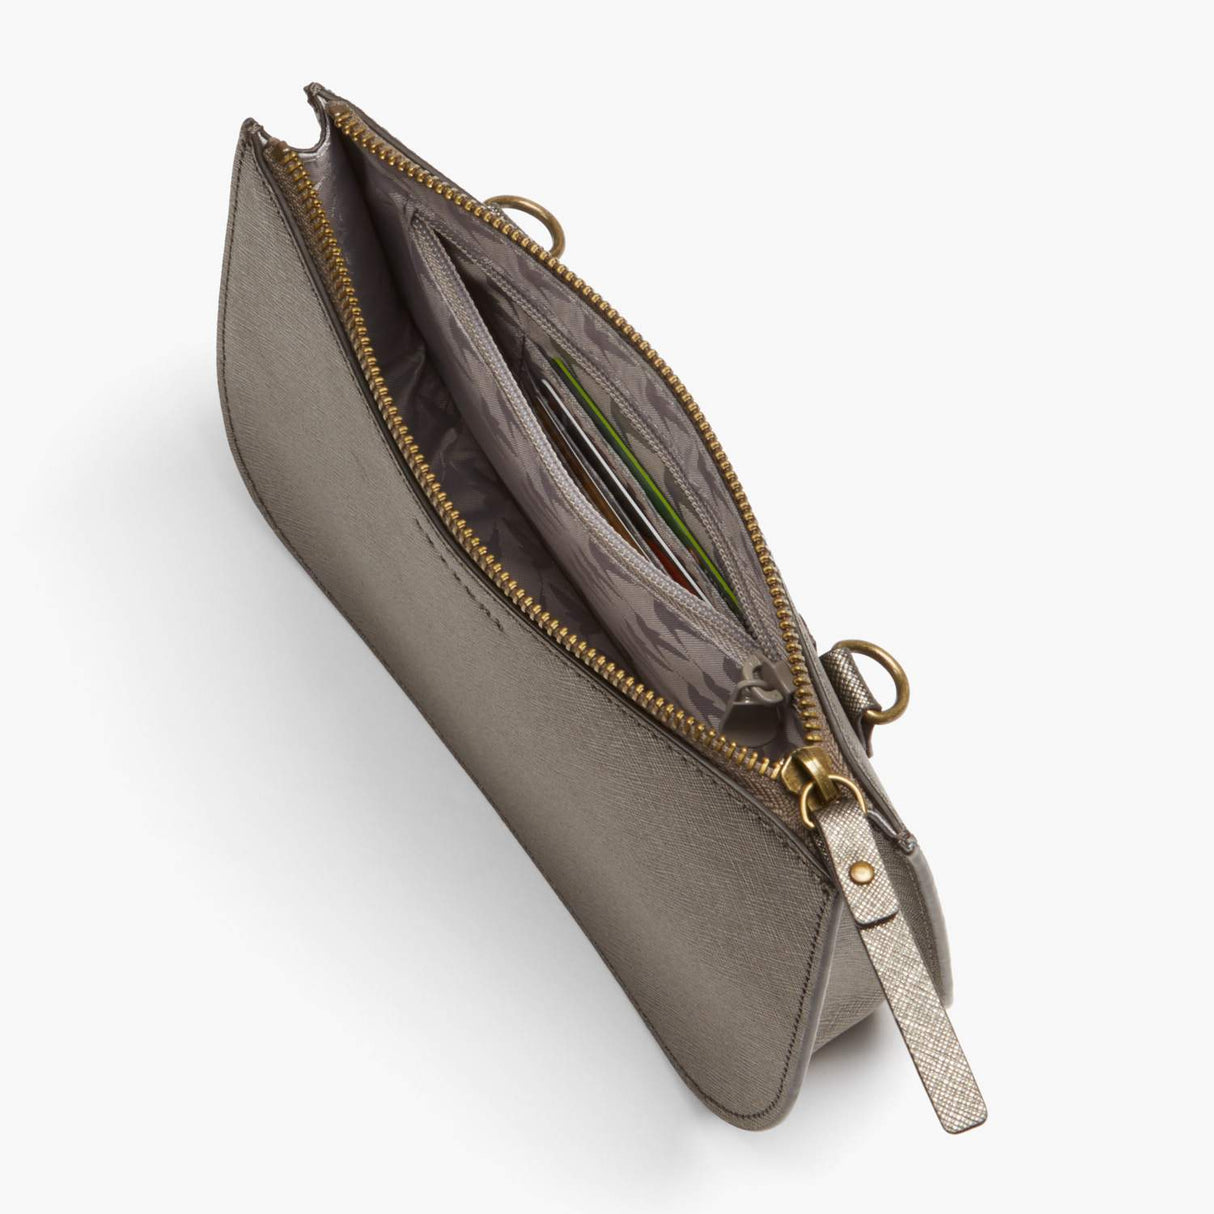 Interior Zipper - Waverley 2 - Saffiano Leather - Graphite / Brass / Grey - Crossbody Bag - Lo & Sons